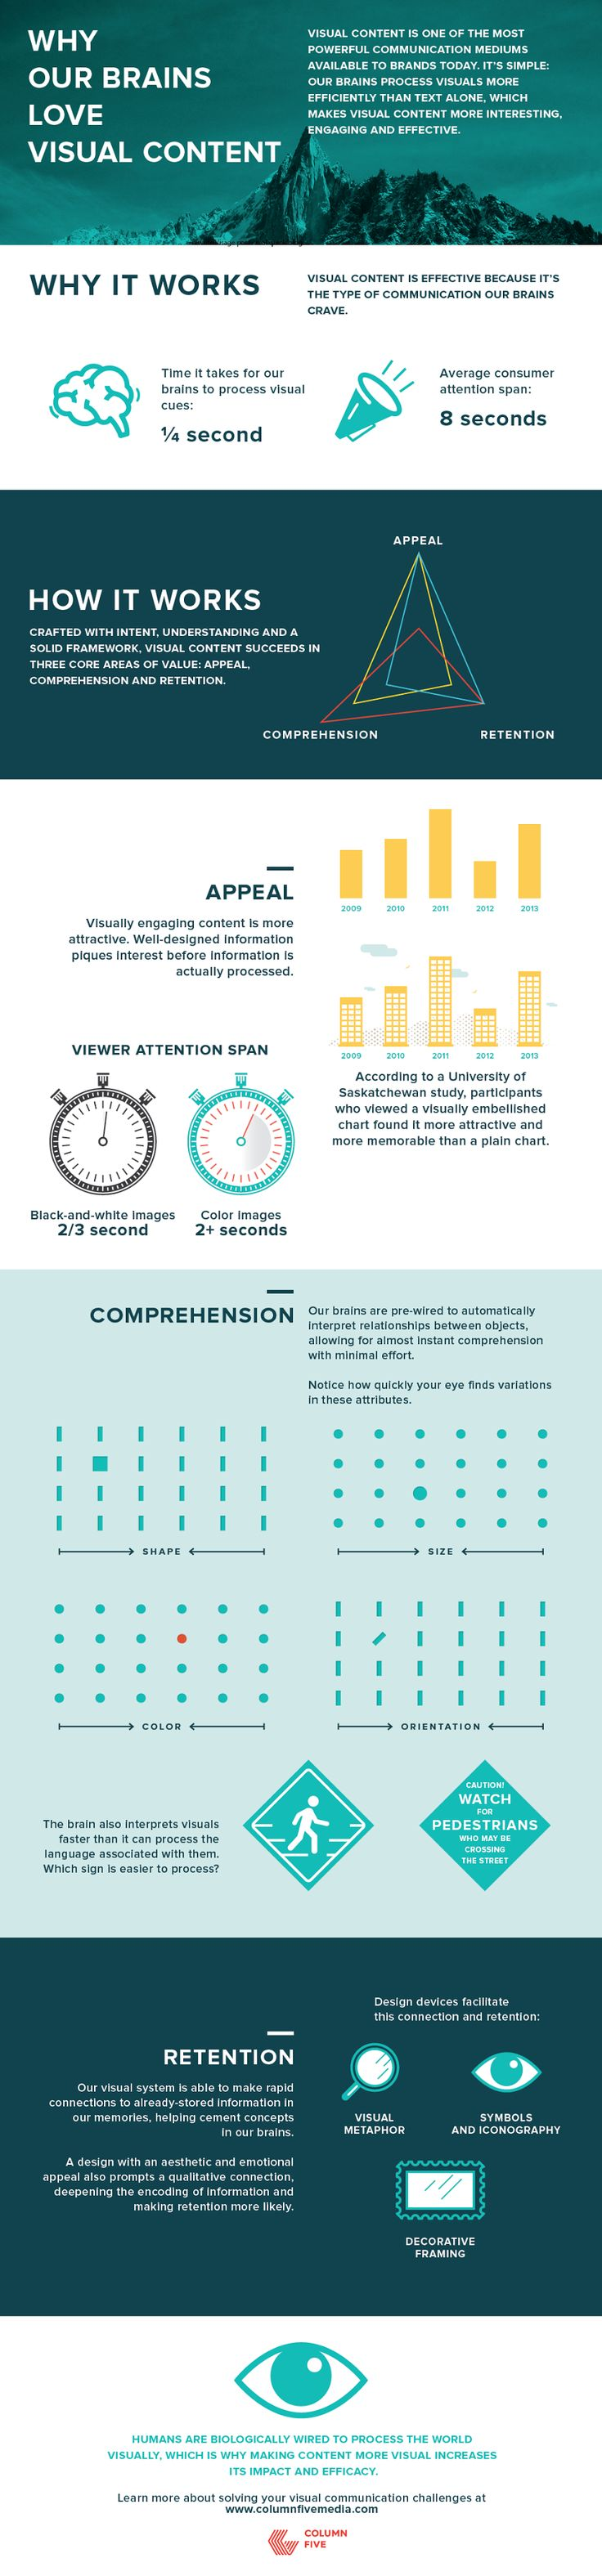 Why Your Brain Loves #Visual Content - #infographic #contentmarketing